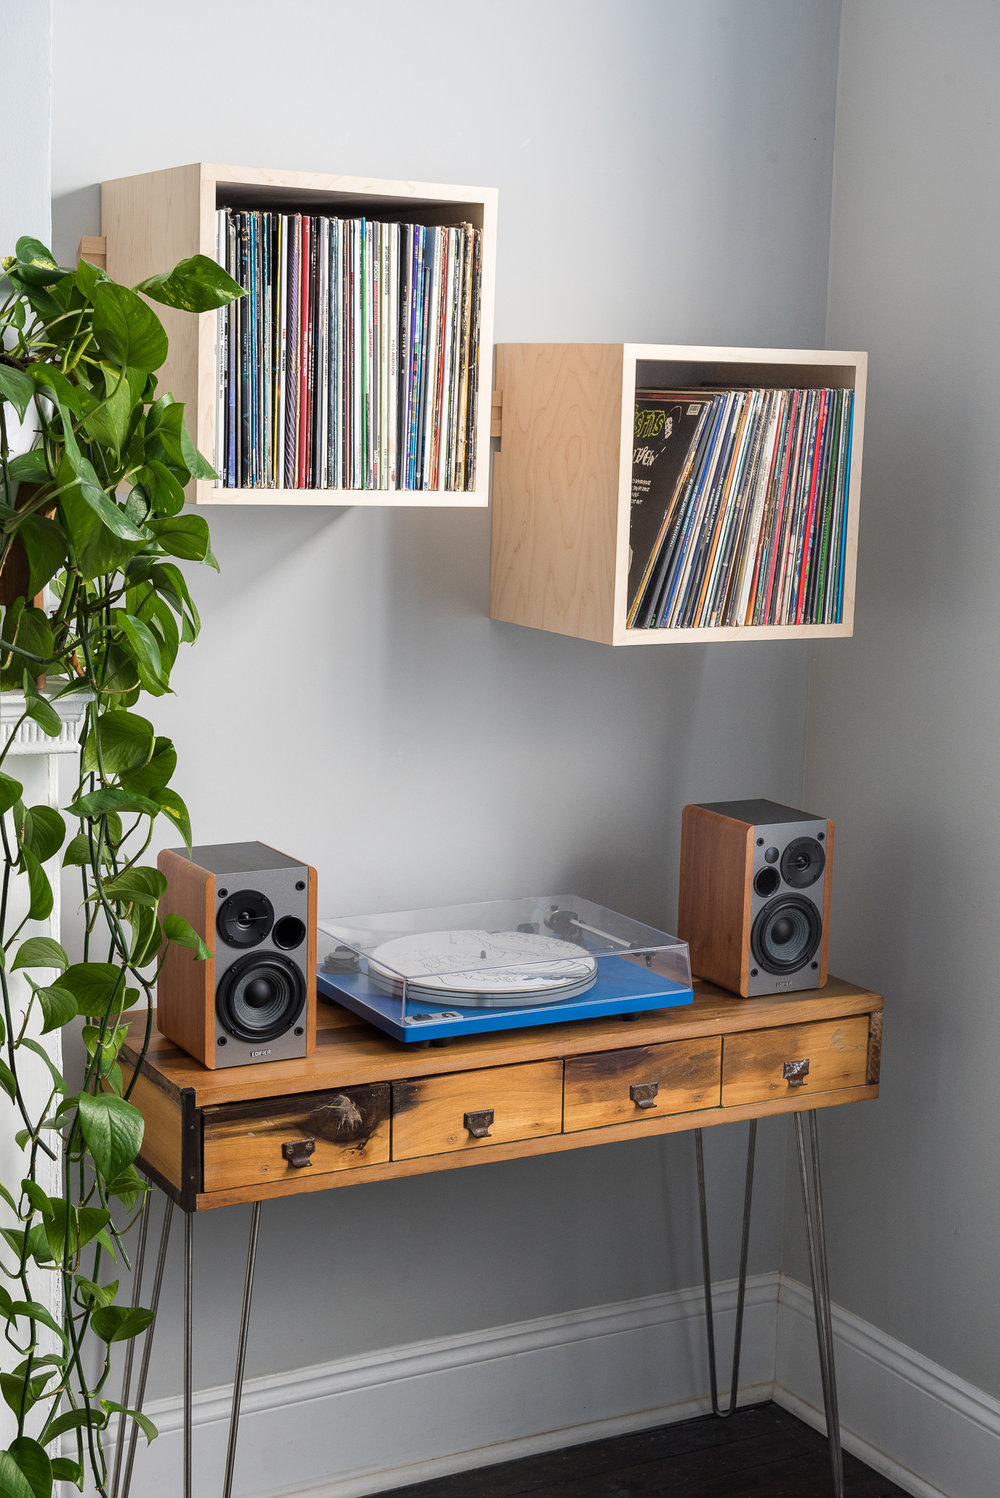 Deep Cut Record Shelves - Hard Maple - Minimalist Set Up - Front View Left.jpg